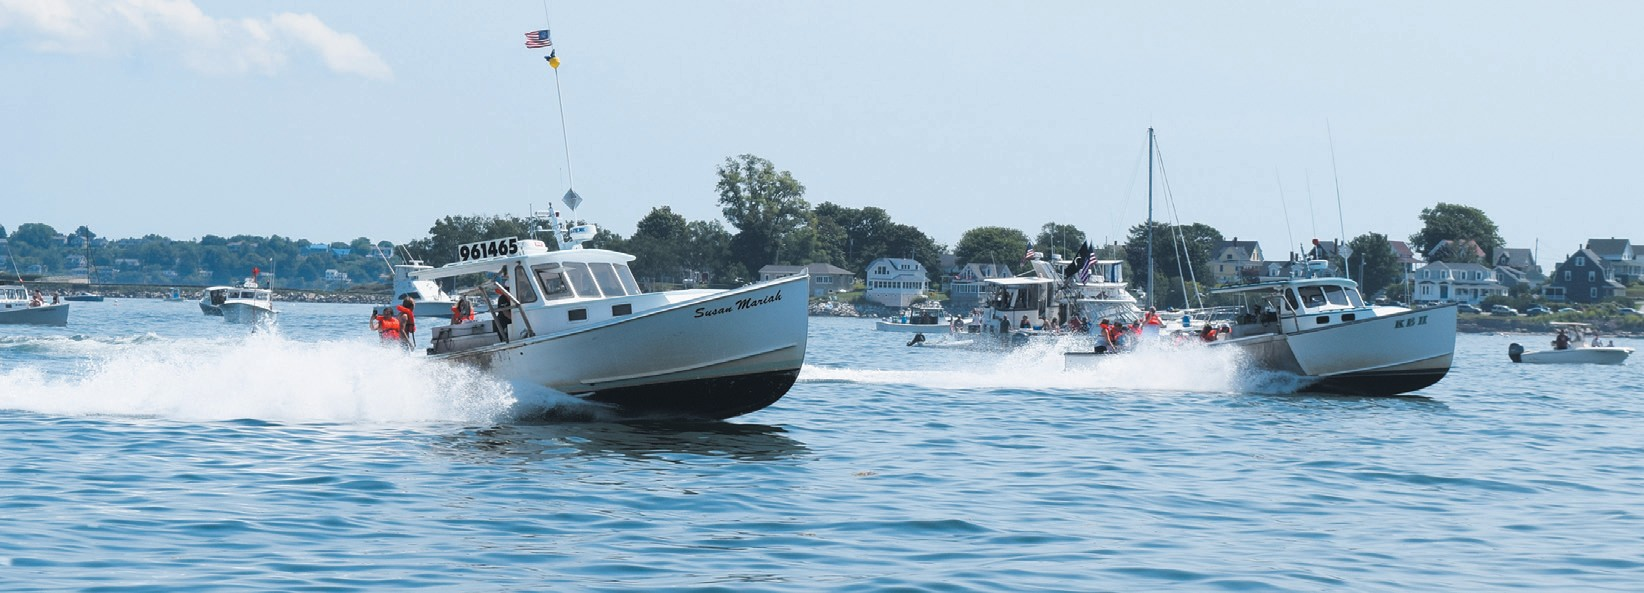 IN THE PHOTO ABOVE, two boats race toward the finish line at the 2018 Harpswell Lobster Boat Races on Sunday. In the photo on the left, people hop between boats, enjoy the sun and have a good time between the races. NATHAN STROUT / THE TIMES RECORD